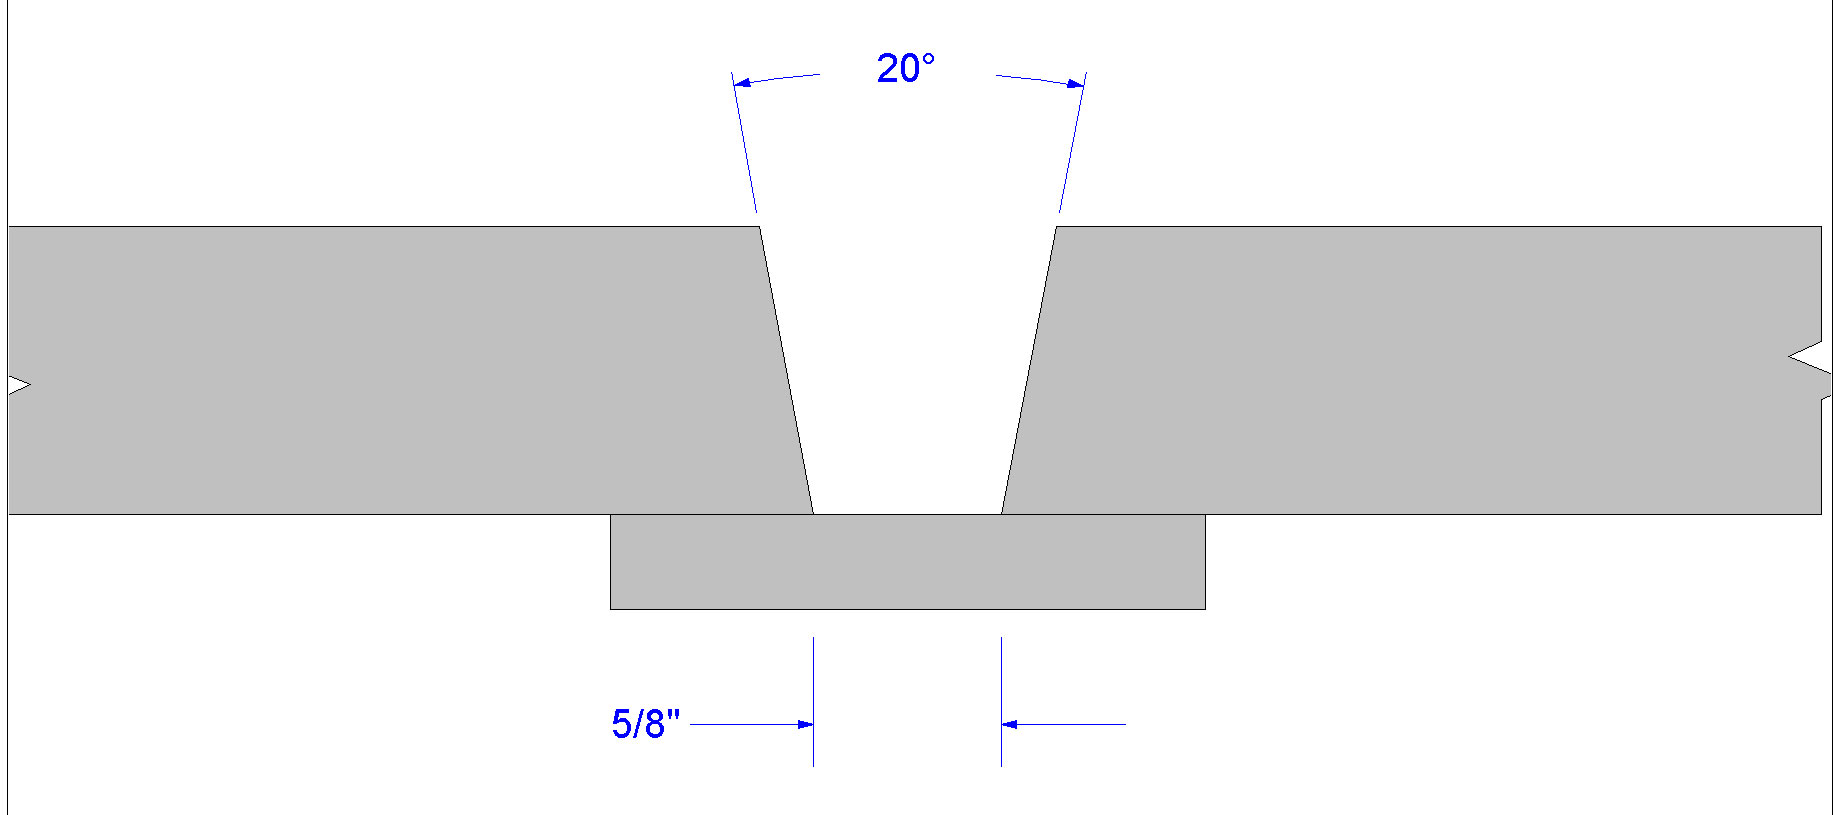 Choosing A Butt Weld Joint Preparation Tig Welding Line Diagram Figure 2 Aws D11 Prequalified B U2 S Utilizing Bevel And Root Opening Click On Illustration To Enlarge It